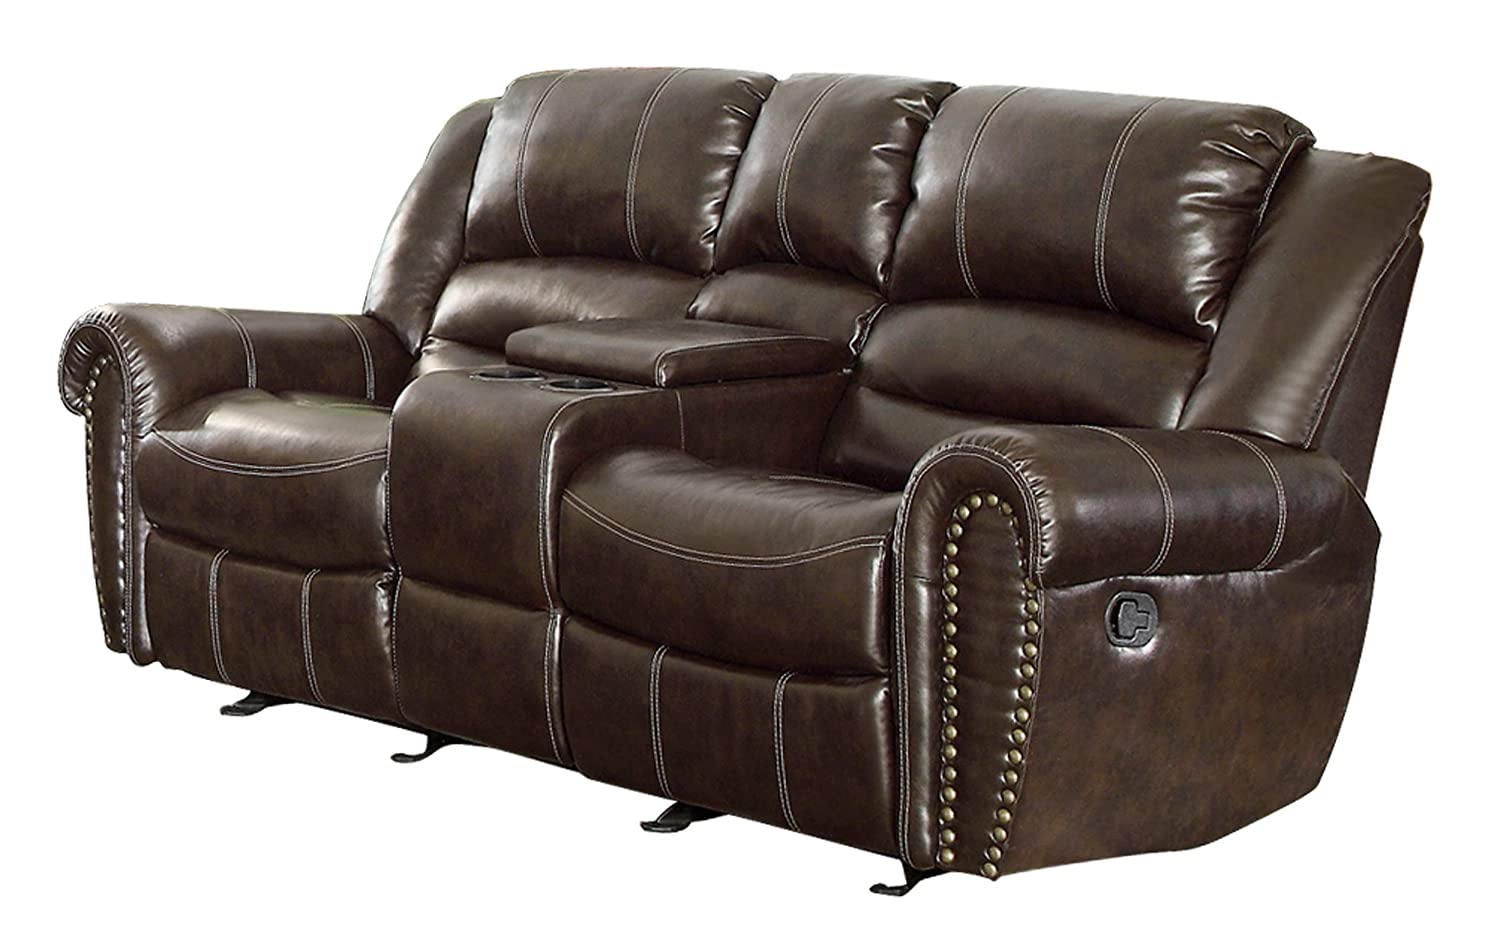 loveseat recliner loveseat recliners best loveseat recliner best loveseat recliners loveseat recliner  sc 1 st  Comfortable recliner.com & Loveseat recliner comparison: top 5 - Comfortable recliner.com islam-shia.org